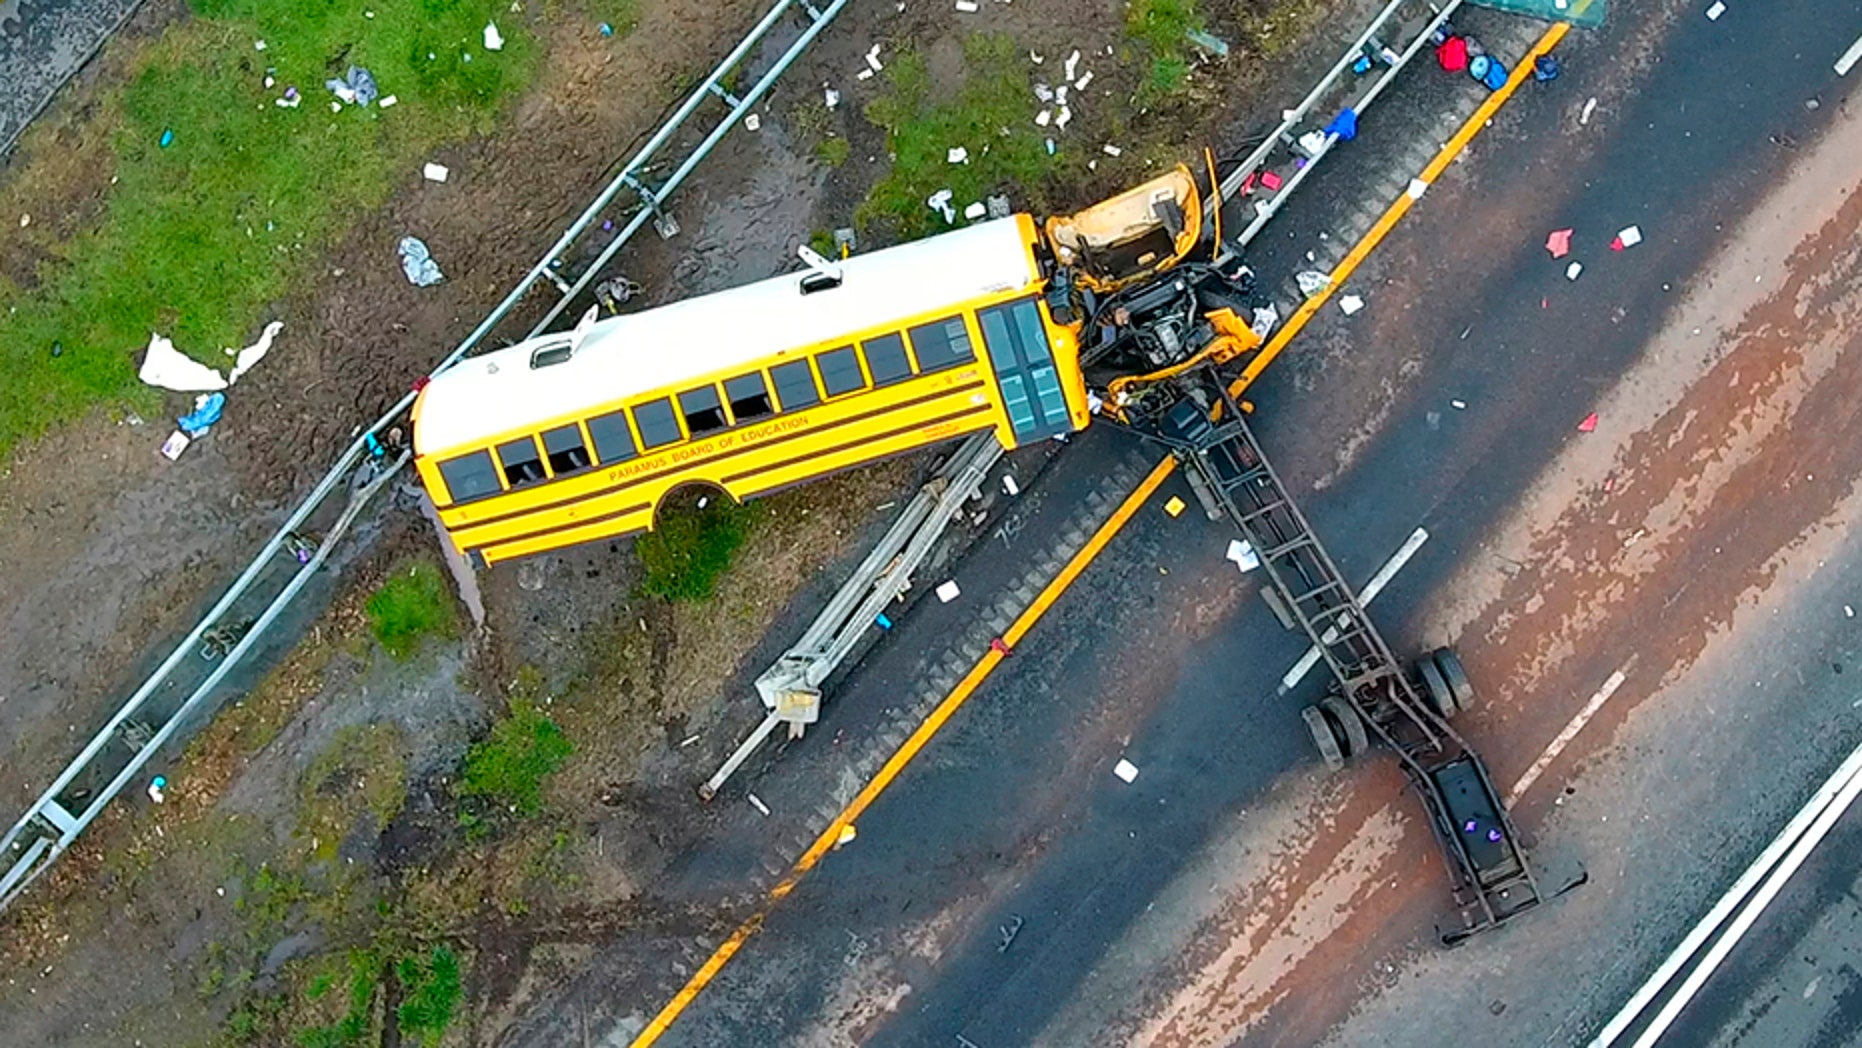 In this aerial photo, a school bus lies crashed on Route 80 in Mount Olive, N.J., Thursday, May 17, 2018. The Paramus school district says the bus was taking students on Thursday from East Brook Middle School to Waterloo Village, a historic site near the crash scene. The yellow school bus was carrying 38 students and seven adults when it crashed, killing a student and a teacher.